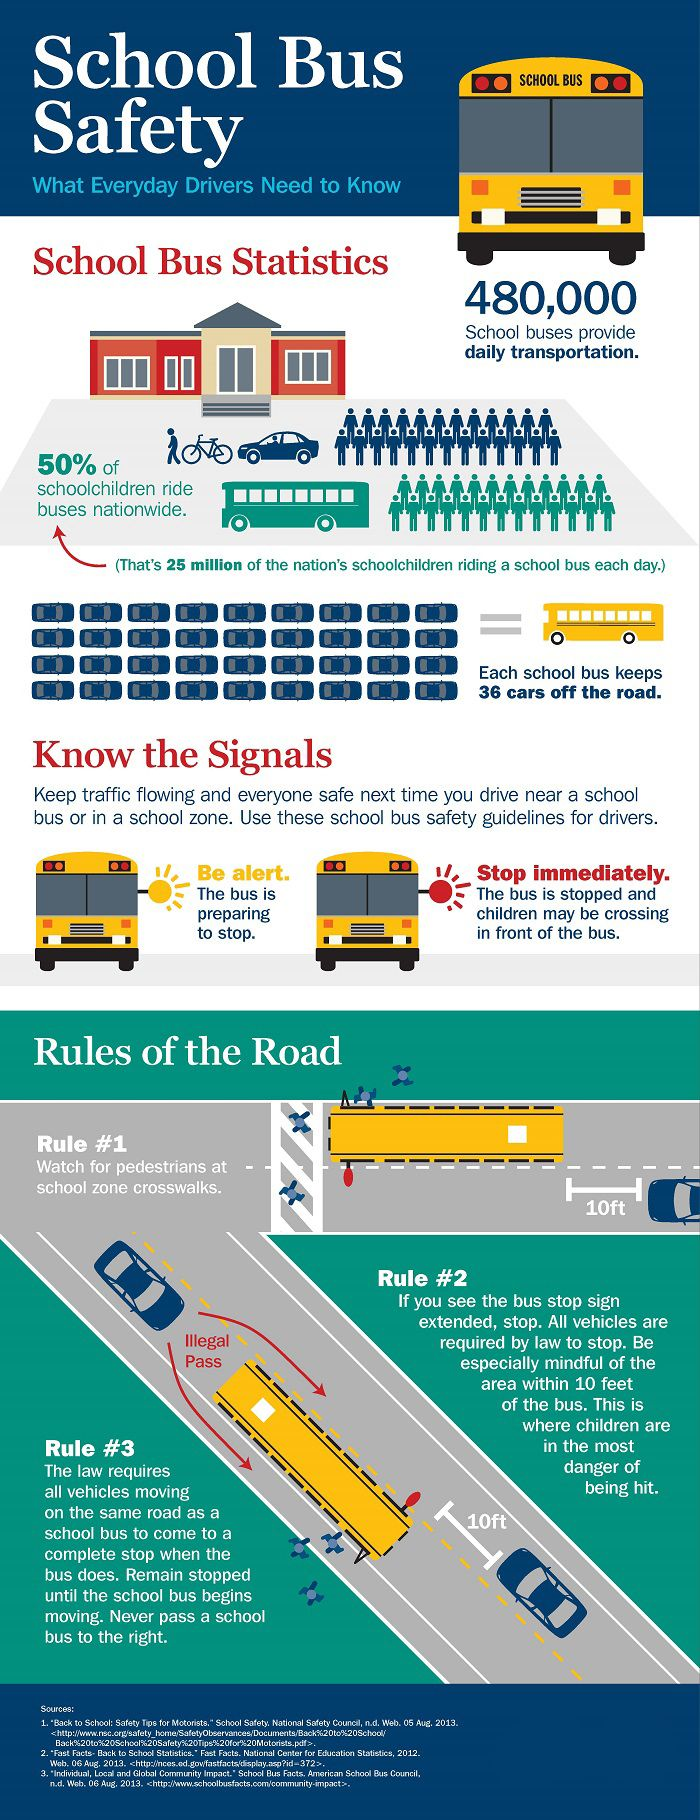 School Bus Safety Every Driver Should Know                                                                                                                                                                                 More